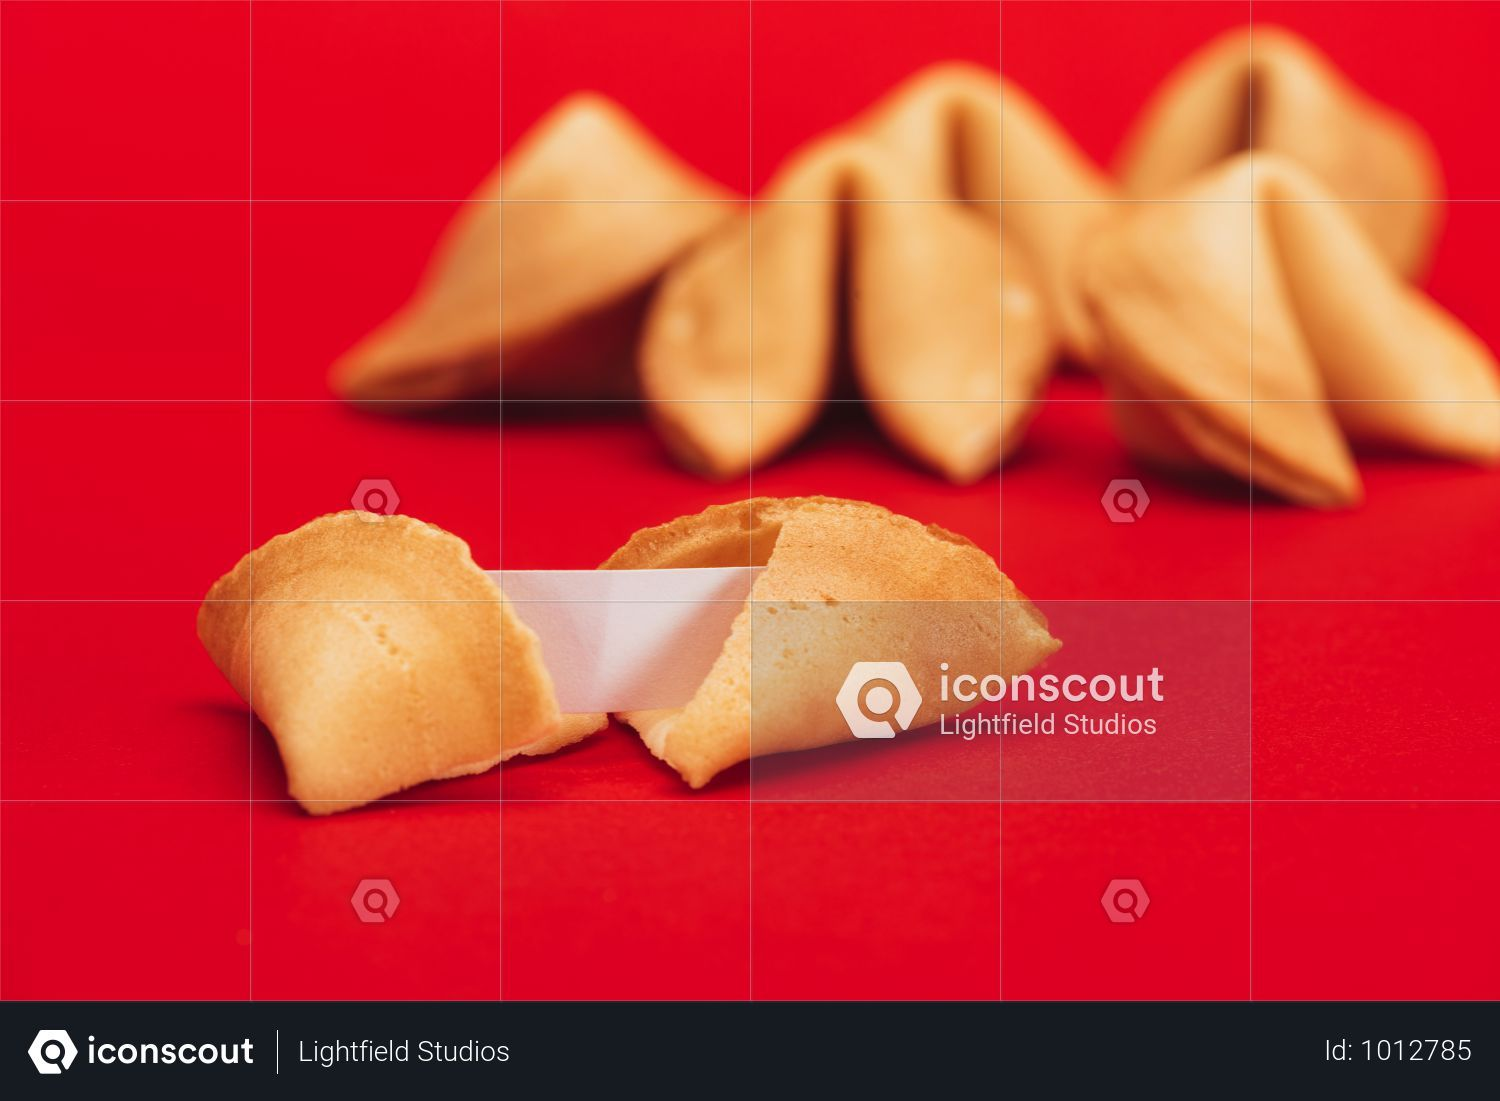 Premium Traditional Chinese Fortune Cookies On Red Surface Chinese New Year Concept Photo Download In Png Jpg Format Fortune Cookie Chinese Fortune Cookie Fortune Cookies Recipe